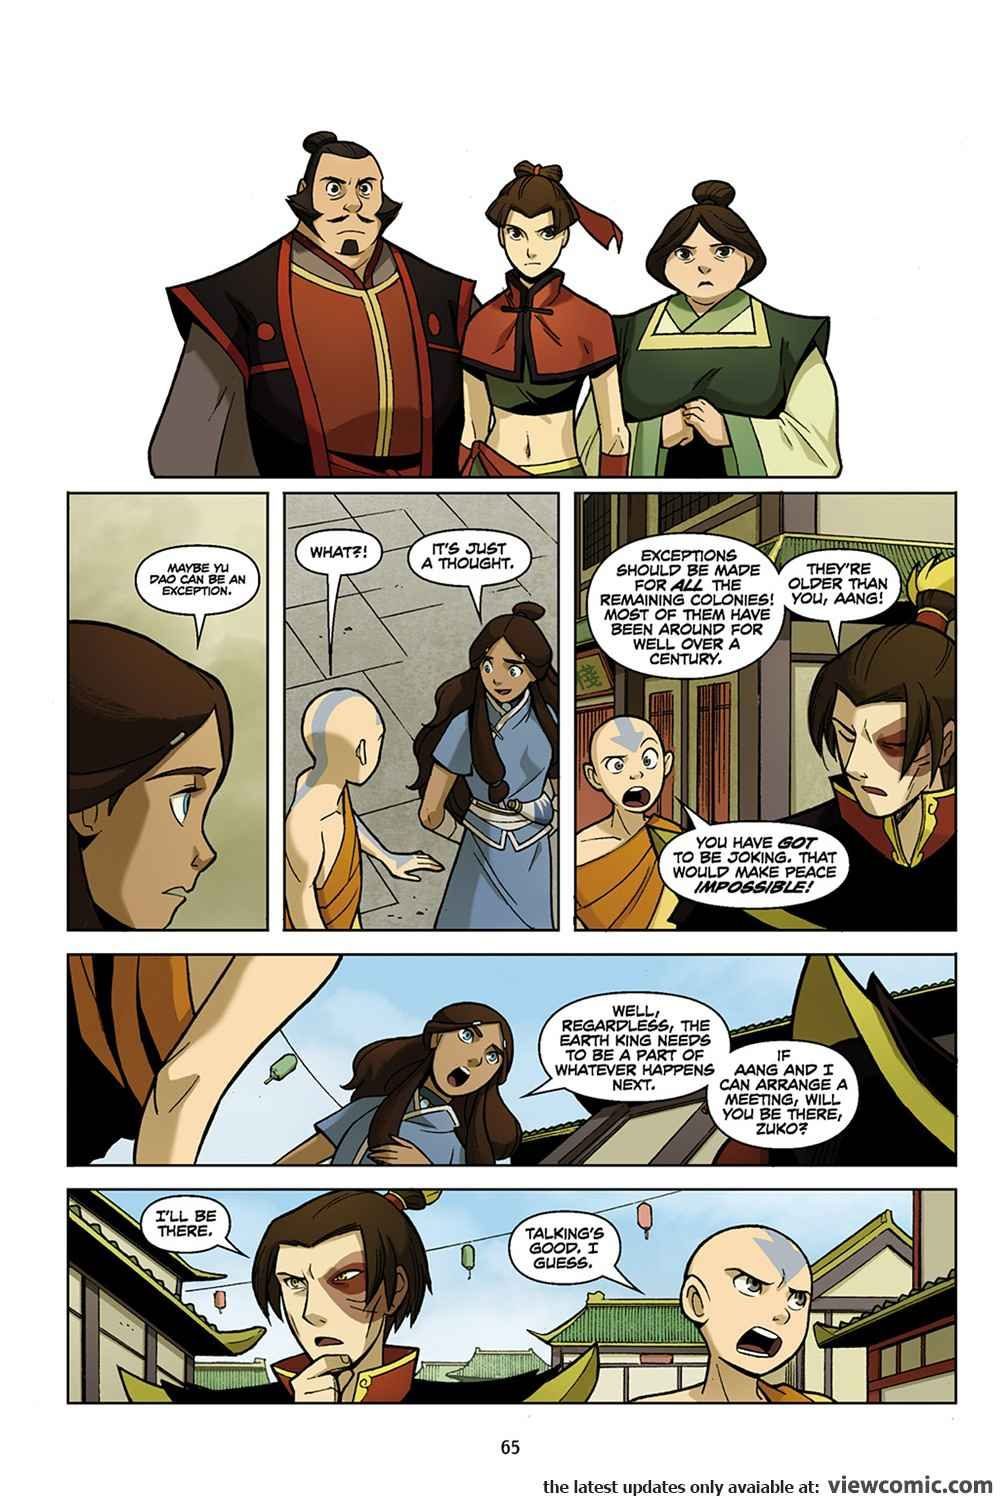 Avatar The Last Airbender The Promise Part 1 2012 View Comic Avatar Avatar The Last Airbender Funny The Last Airbender